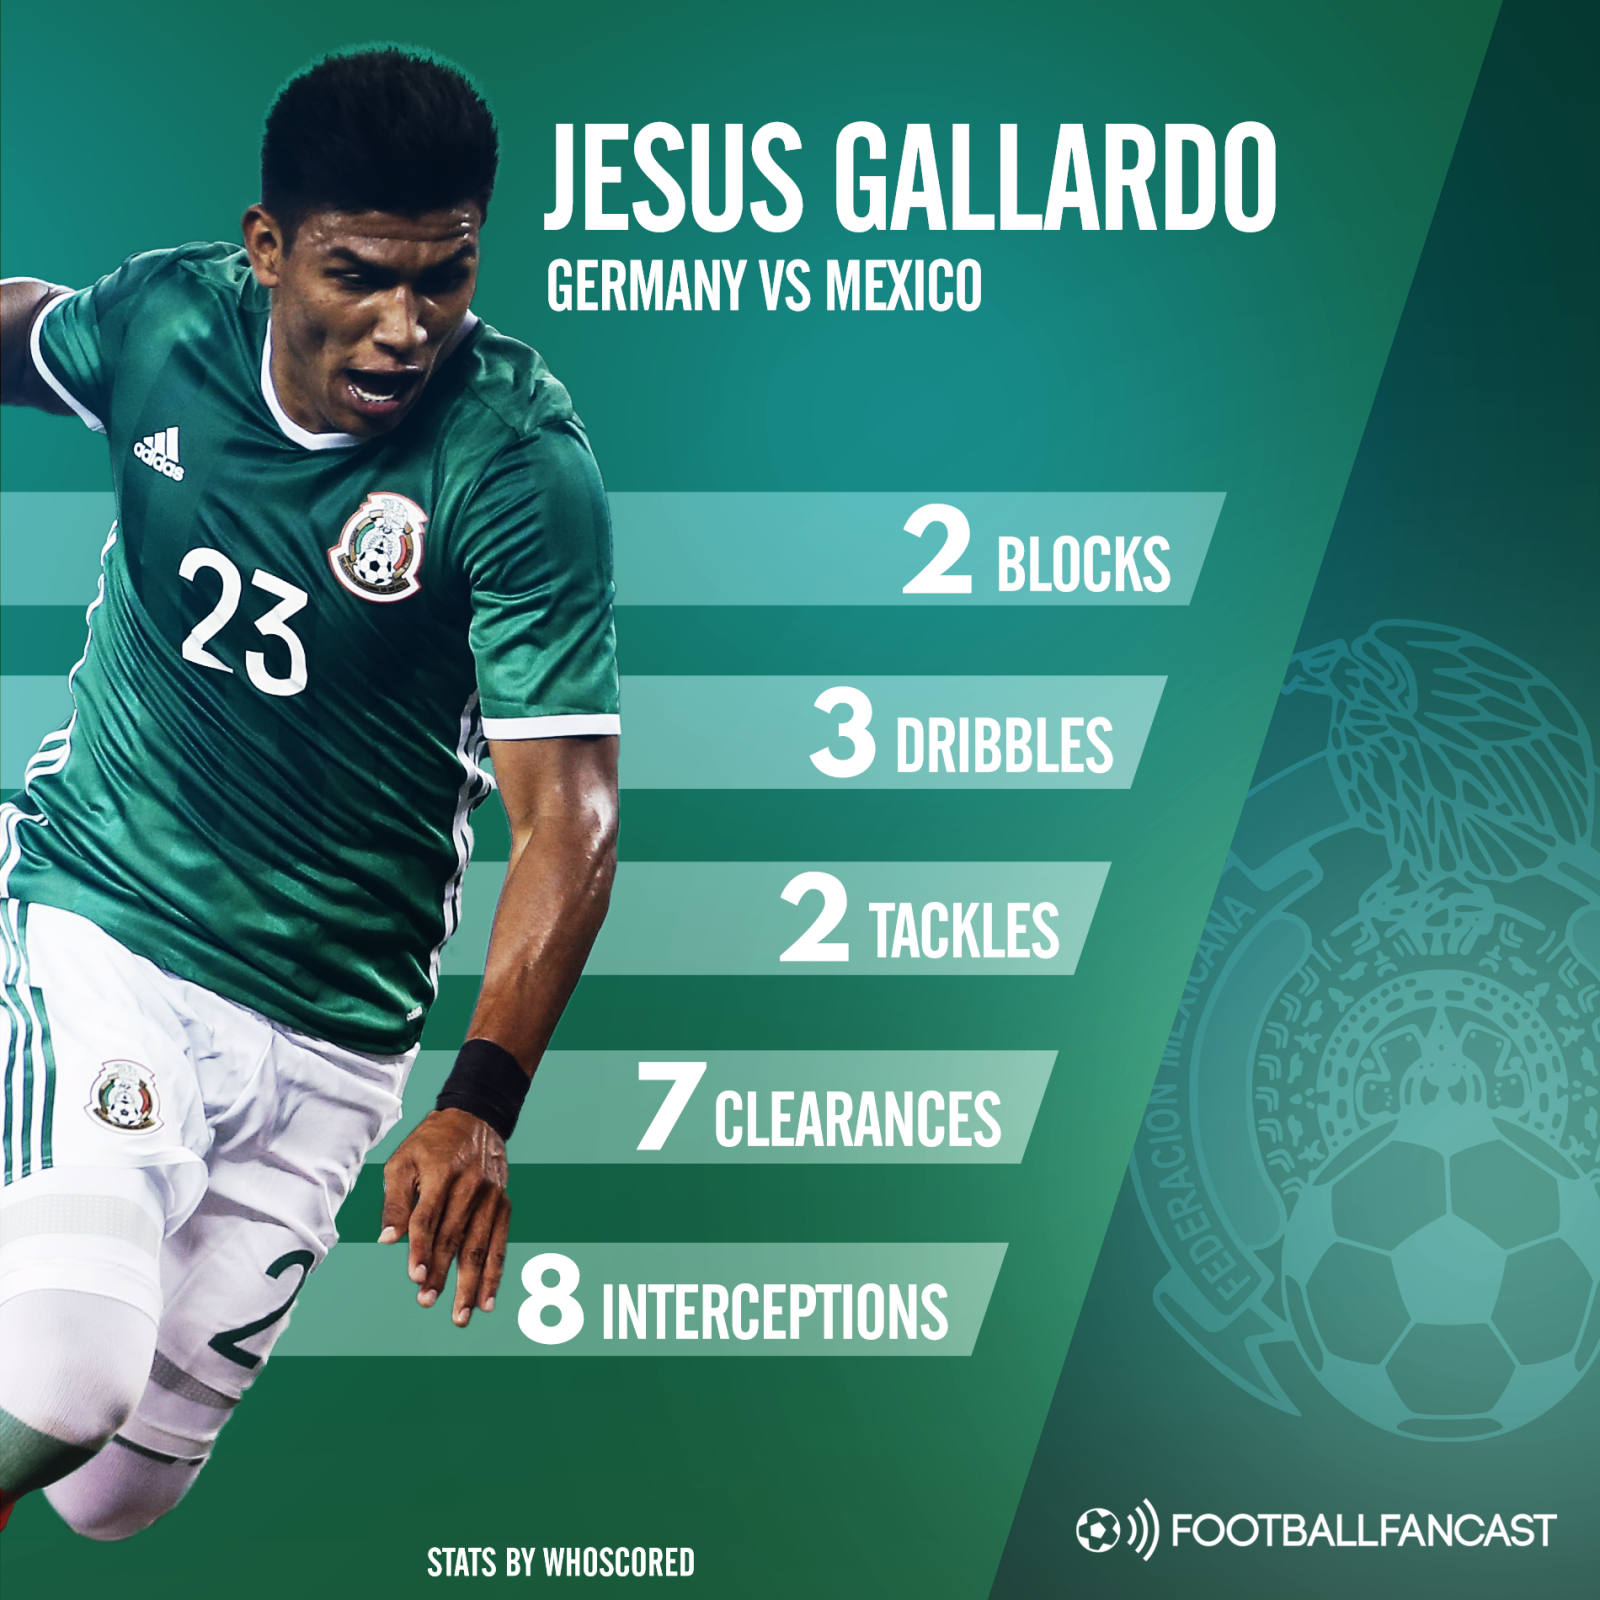 Jesus Gallardo's stats from Mexico's win over Germany